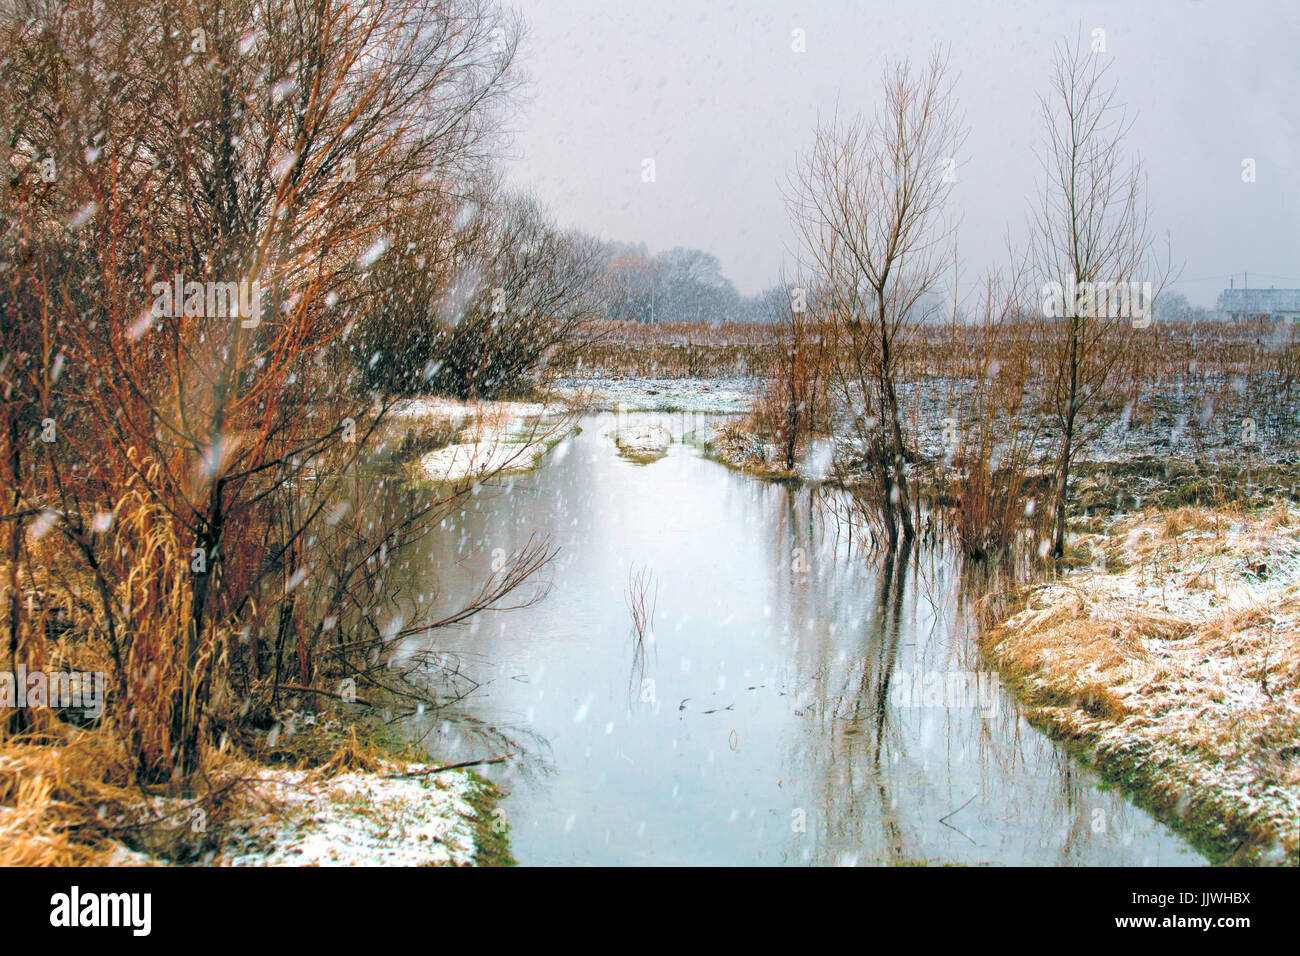 Winter river in snowy weather - Stock Image